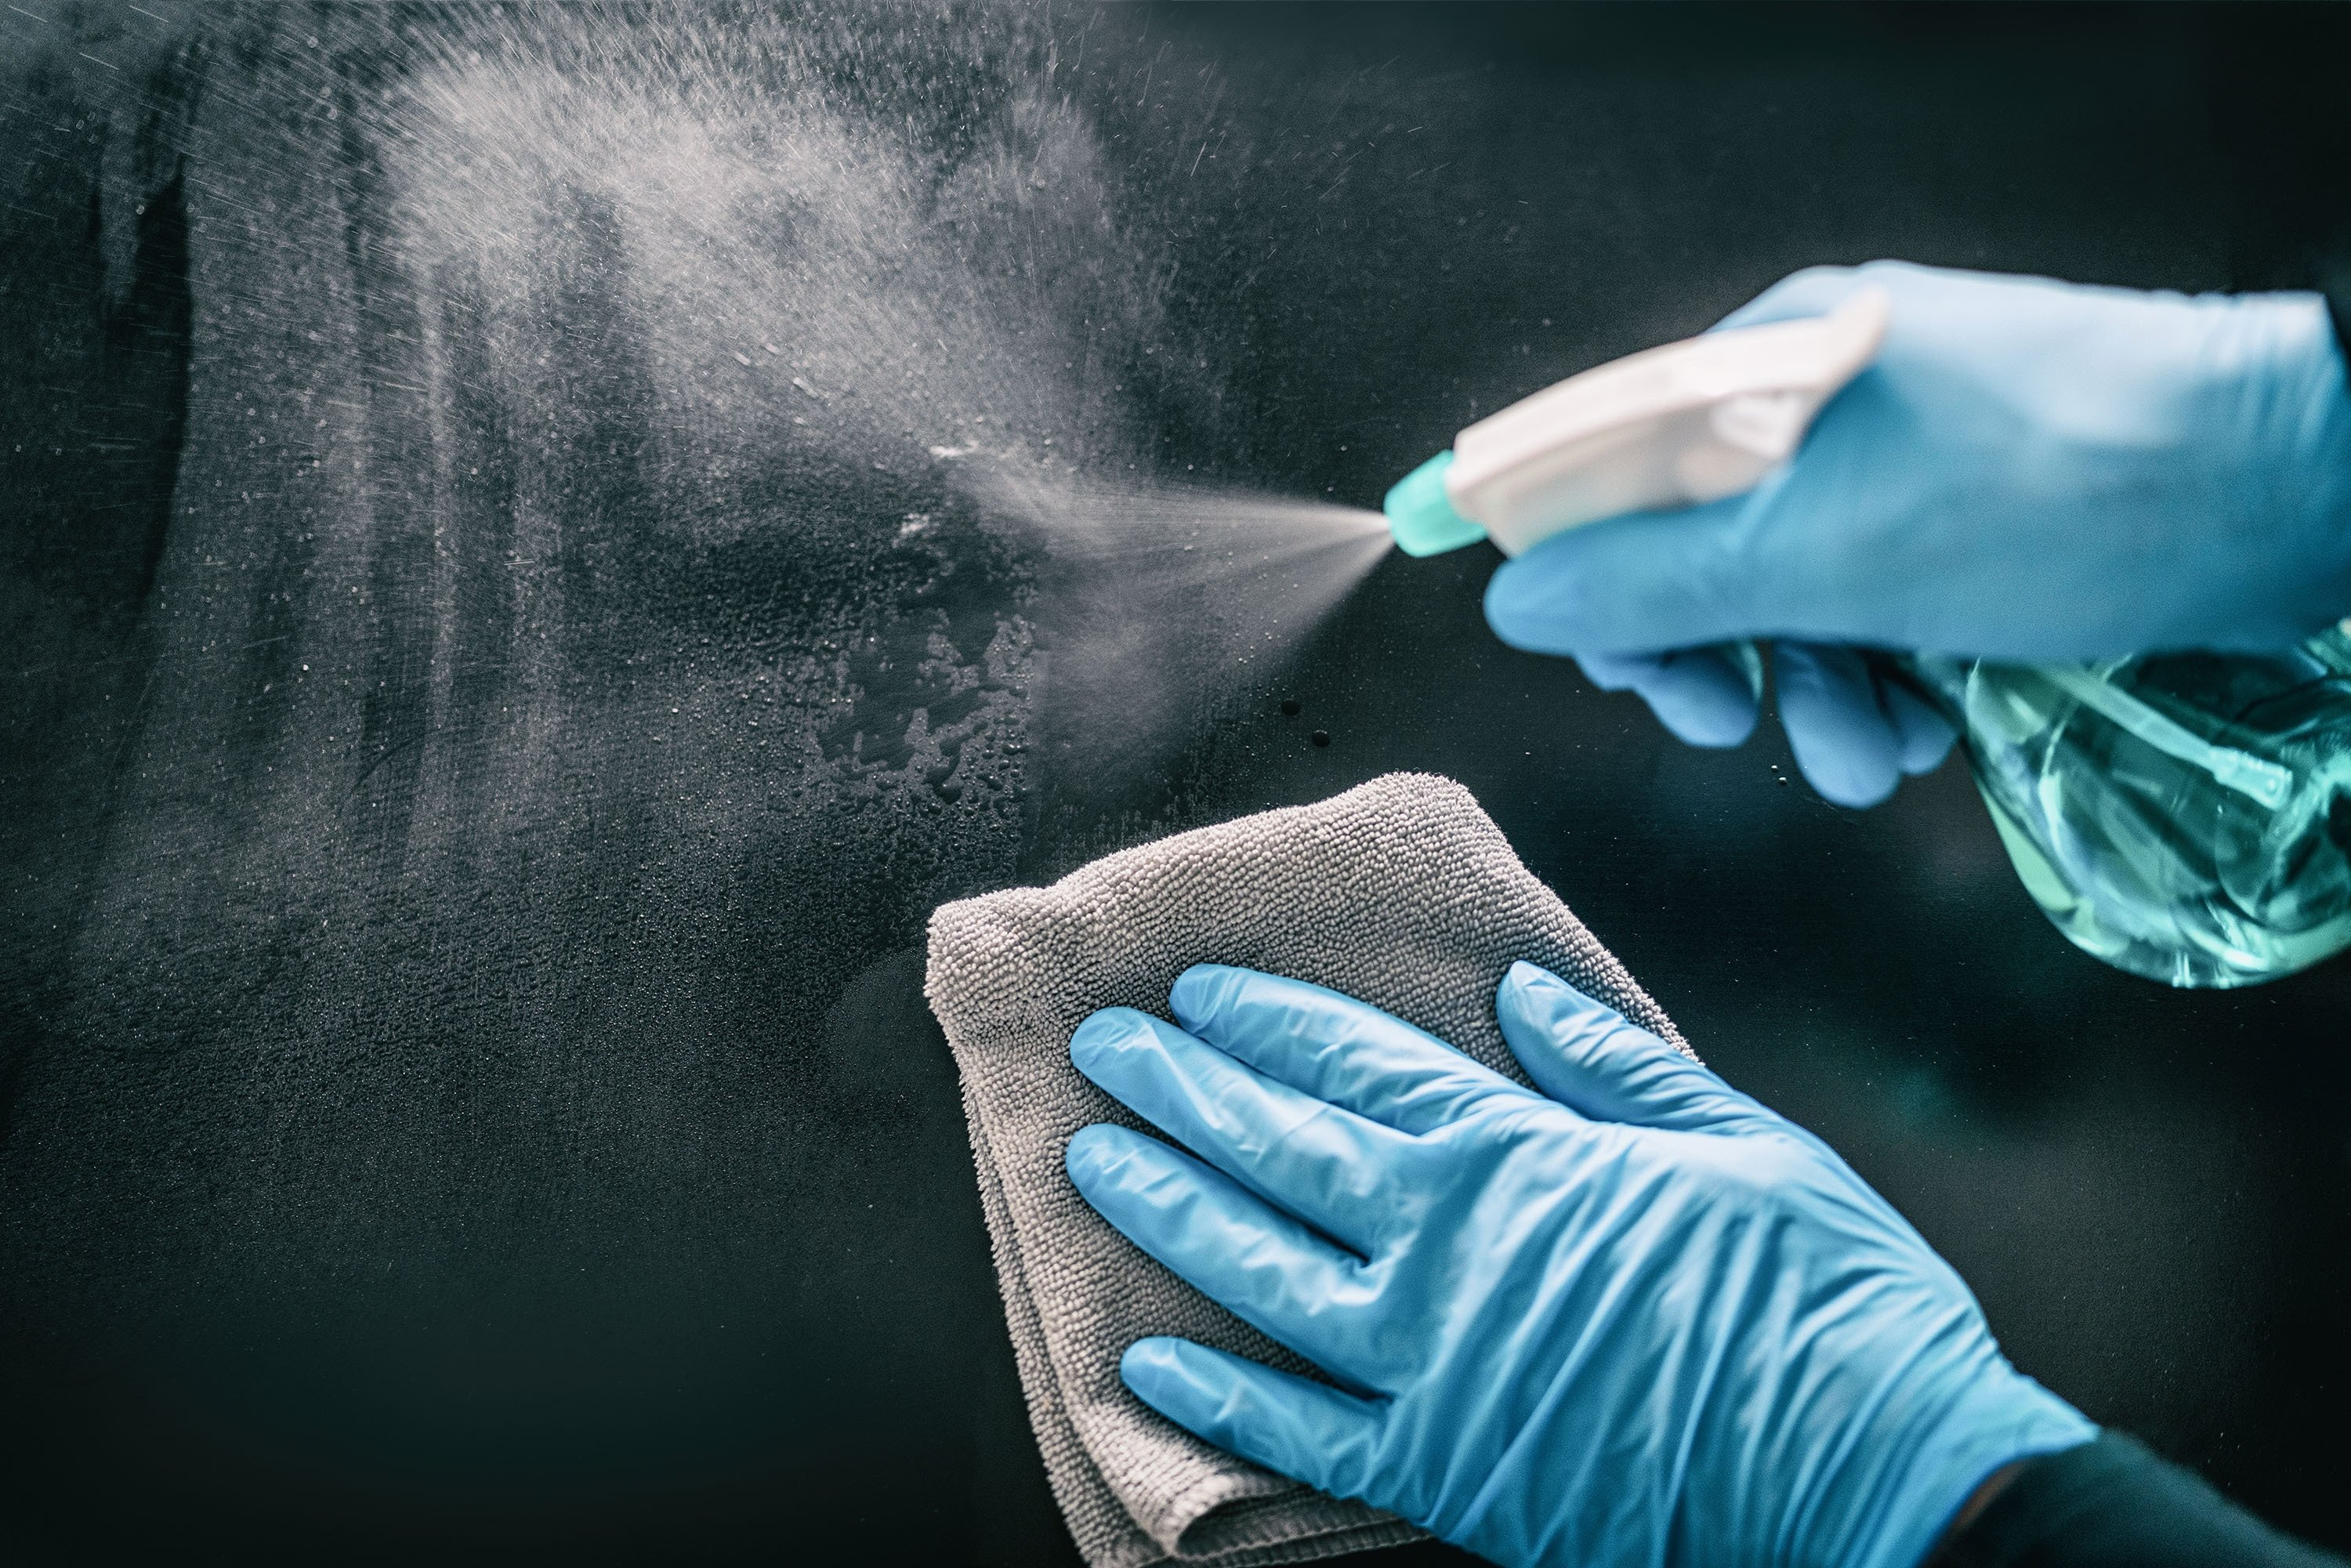 Wear gloves while cleaning to save yourself from too much contact with drying chemicals. (Shutterstock Photo)